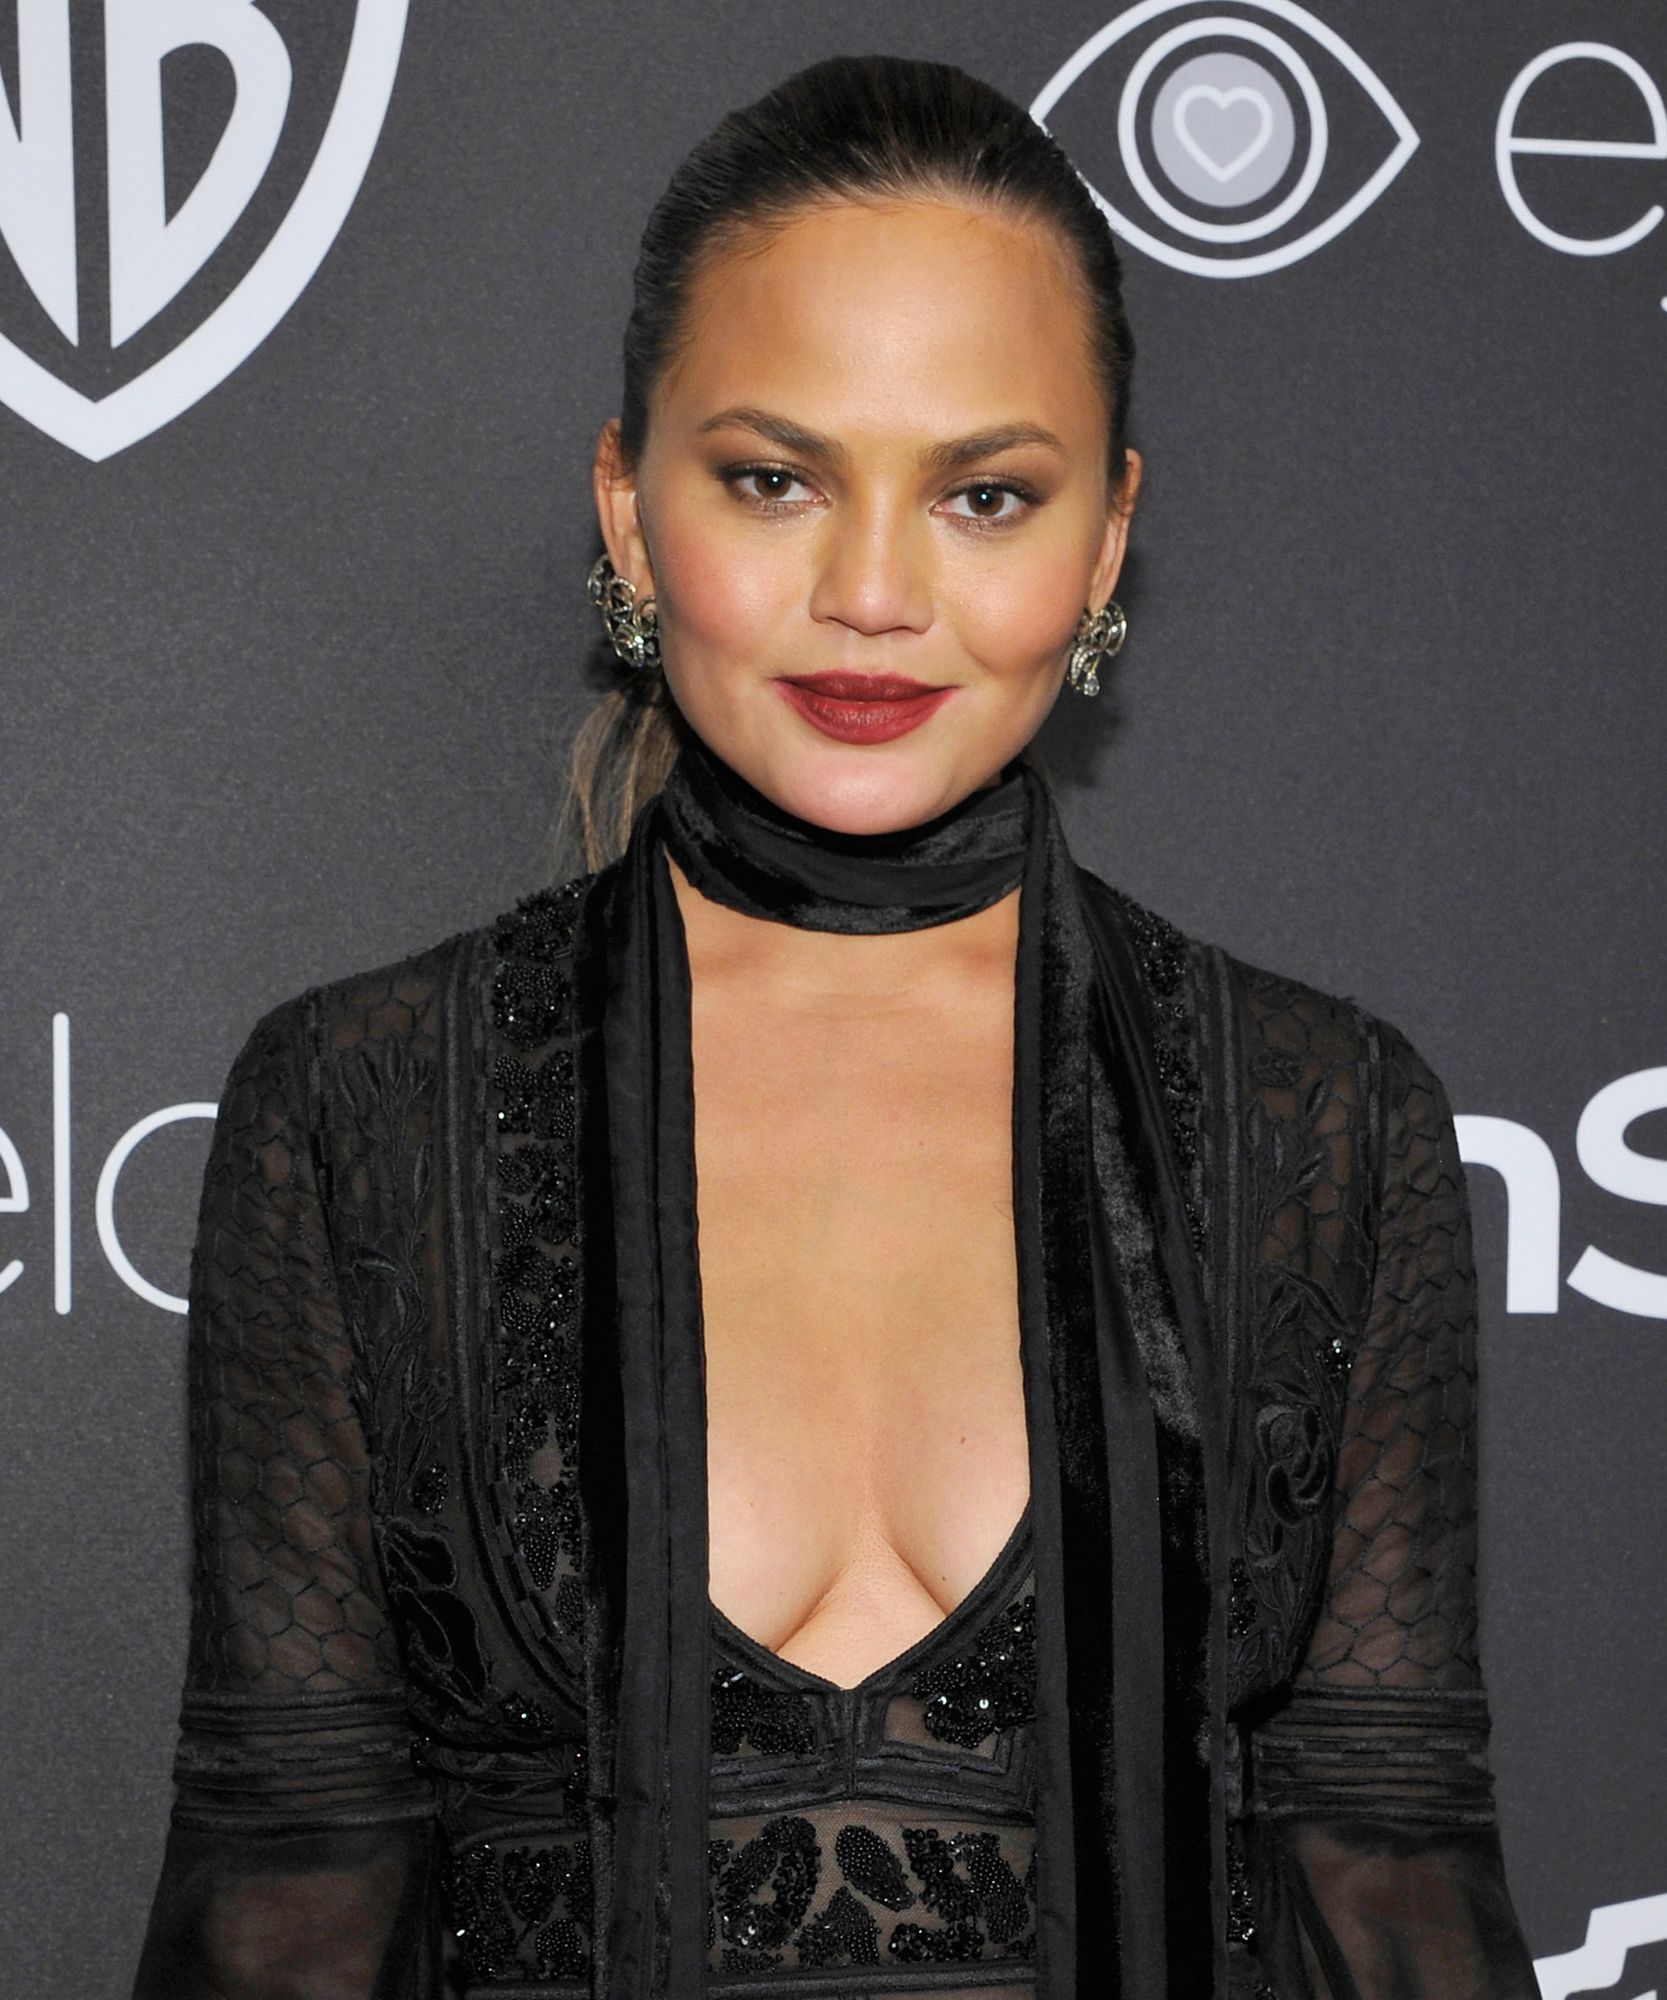 Chrissy Teigen Gets Real About Post-Baby Stretch Marks